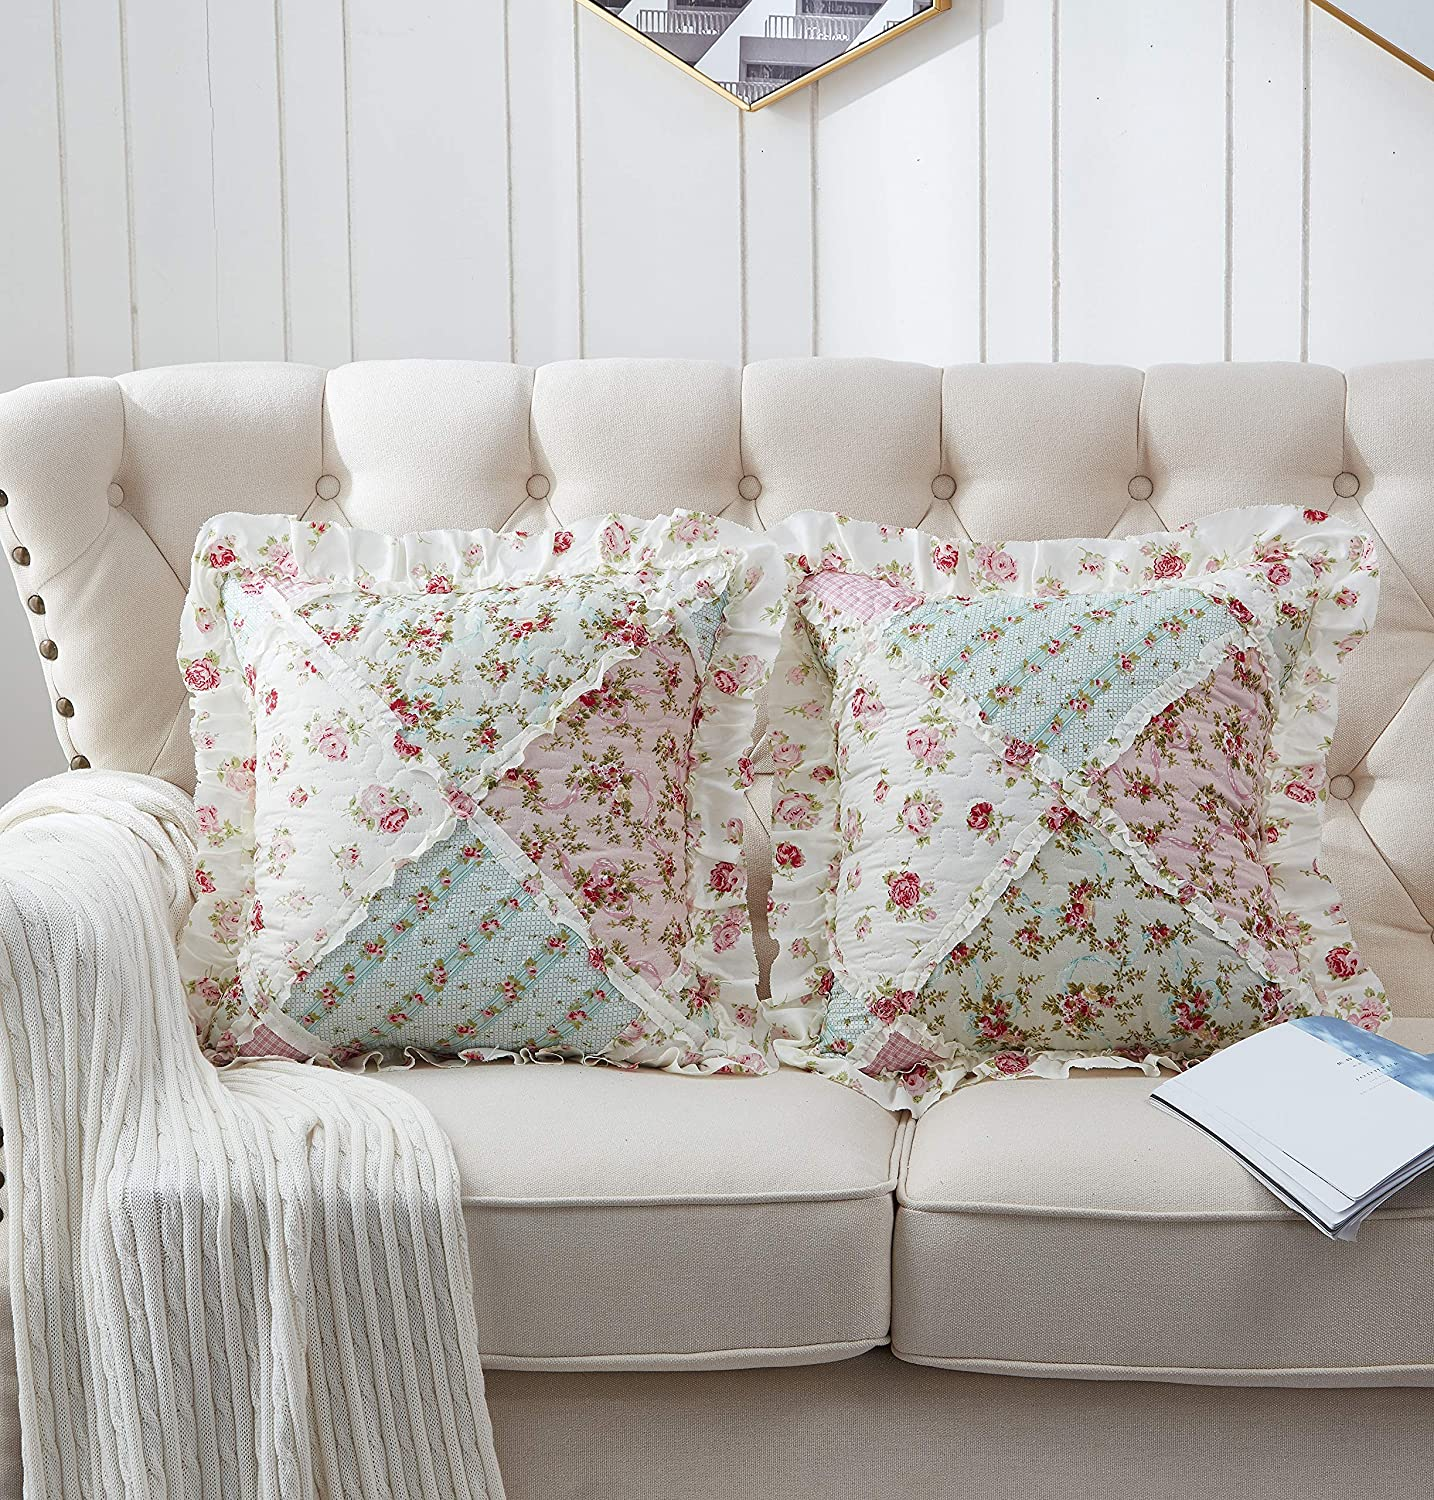 Brilliant Sunshine Patchwork Ruffle Pillow Cushion Covers Rose Floral Print Quilted Scroll Embroidery Layers with Soft Filling Cases 18 x18 inch, Pink/Green